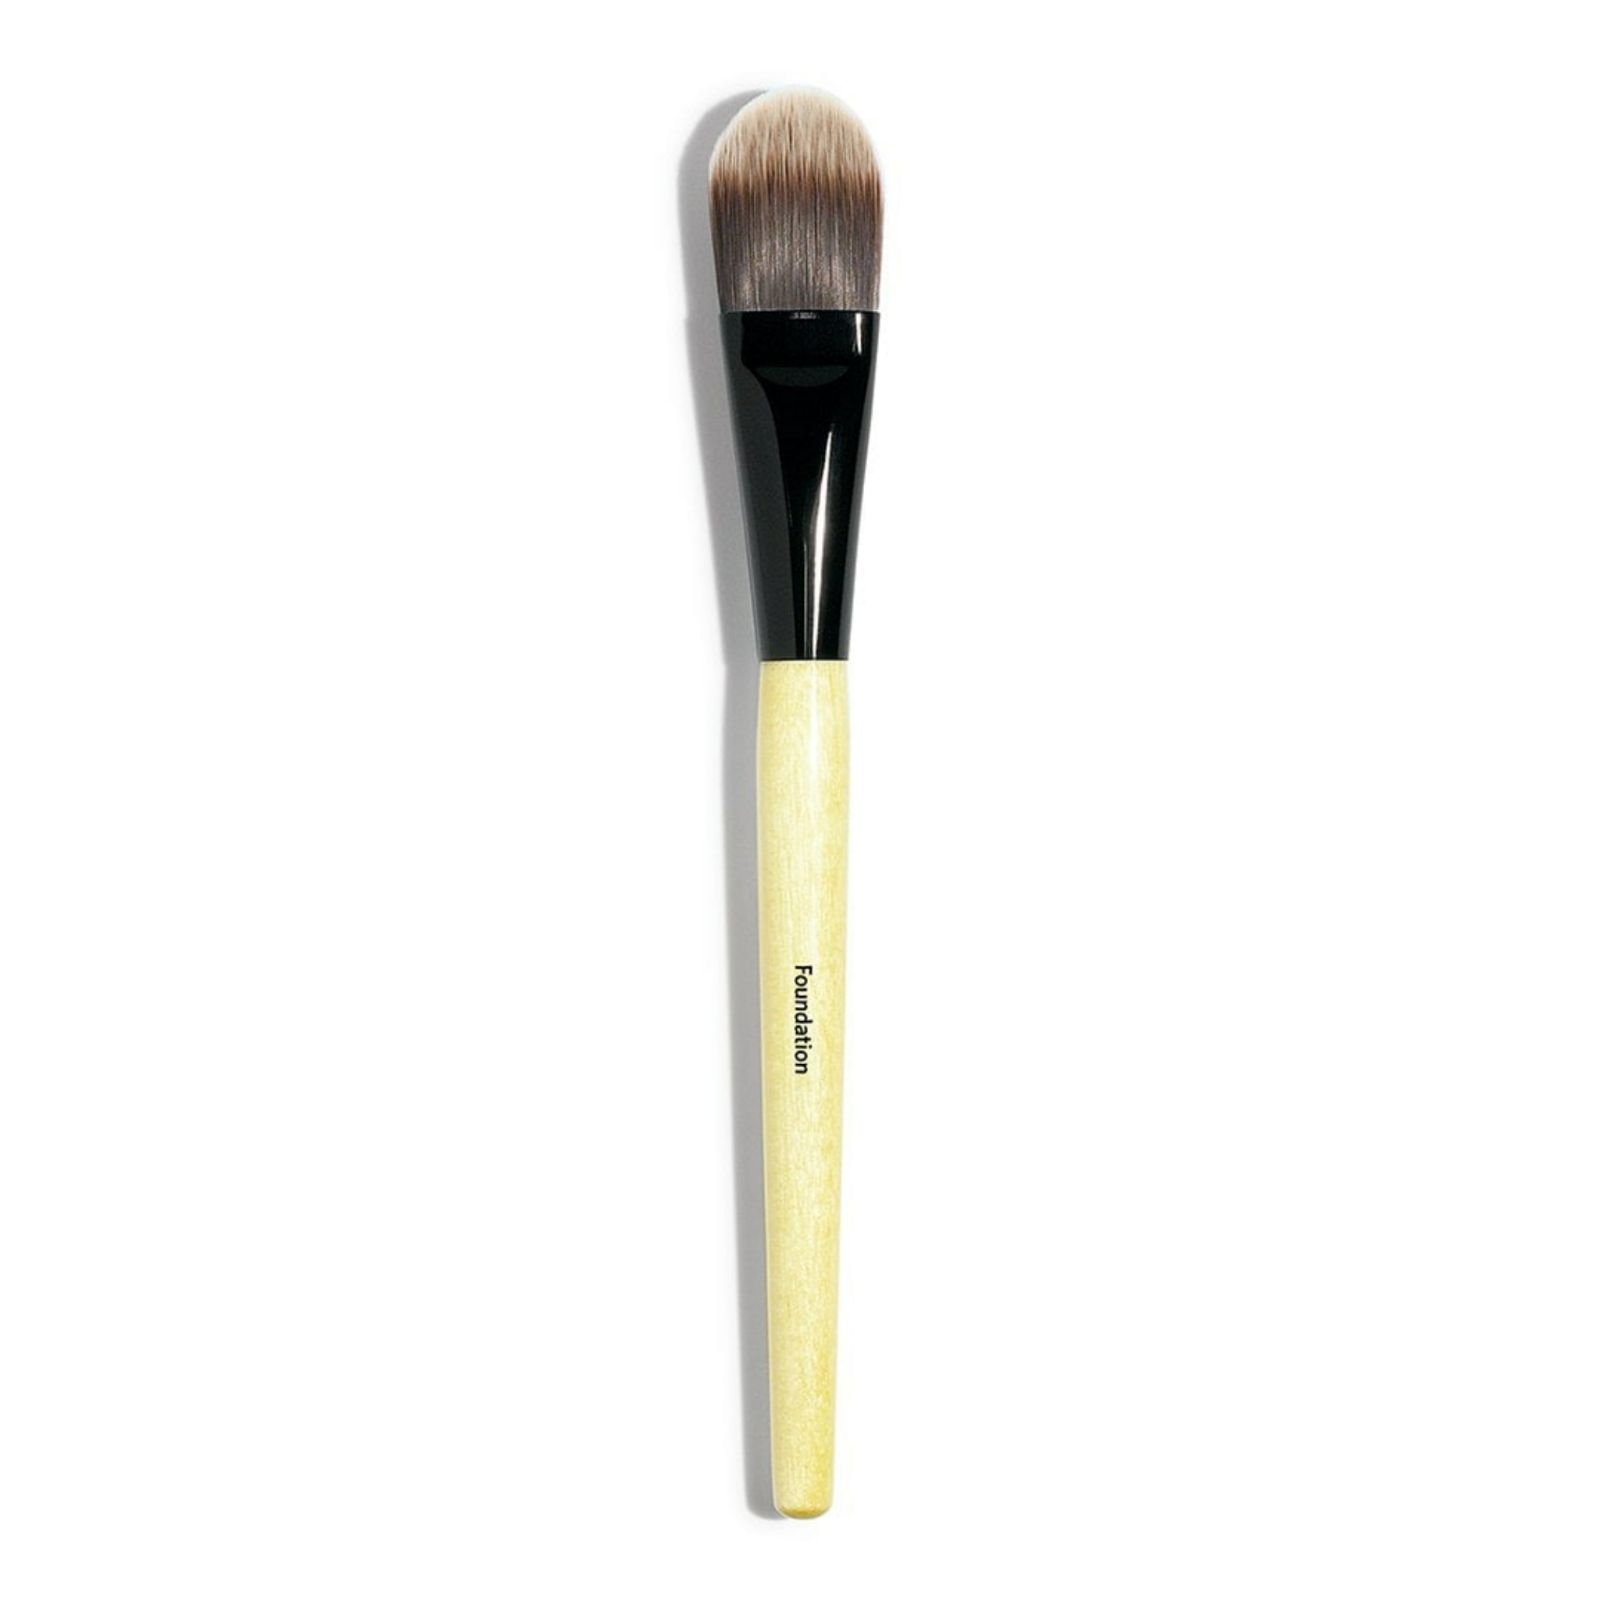 Full Size Foundation Brush Bobbi Brown